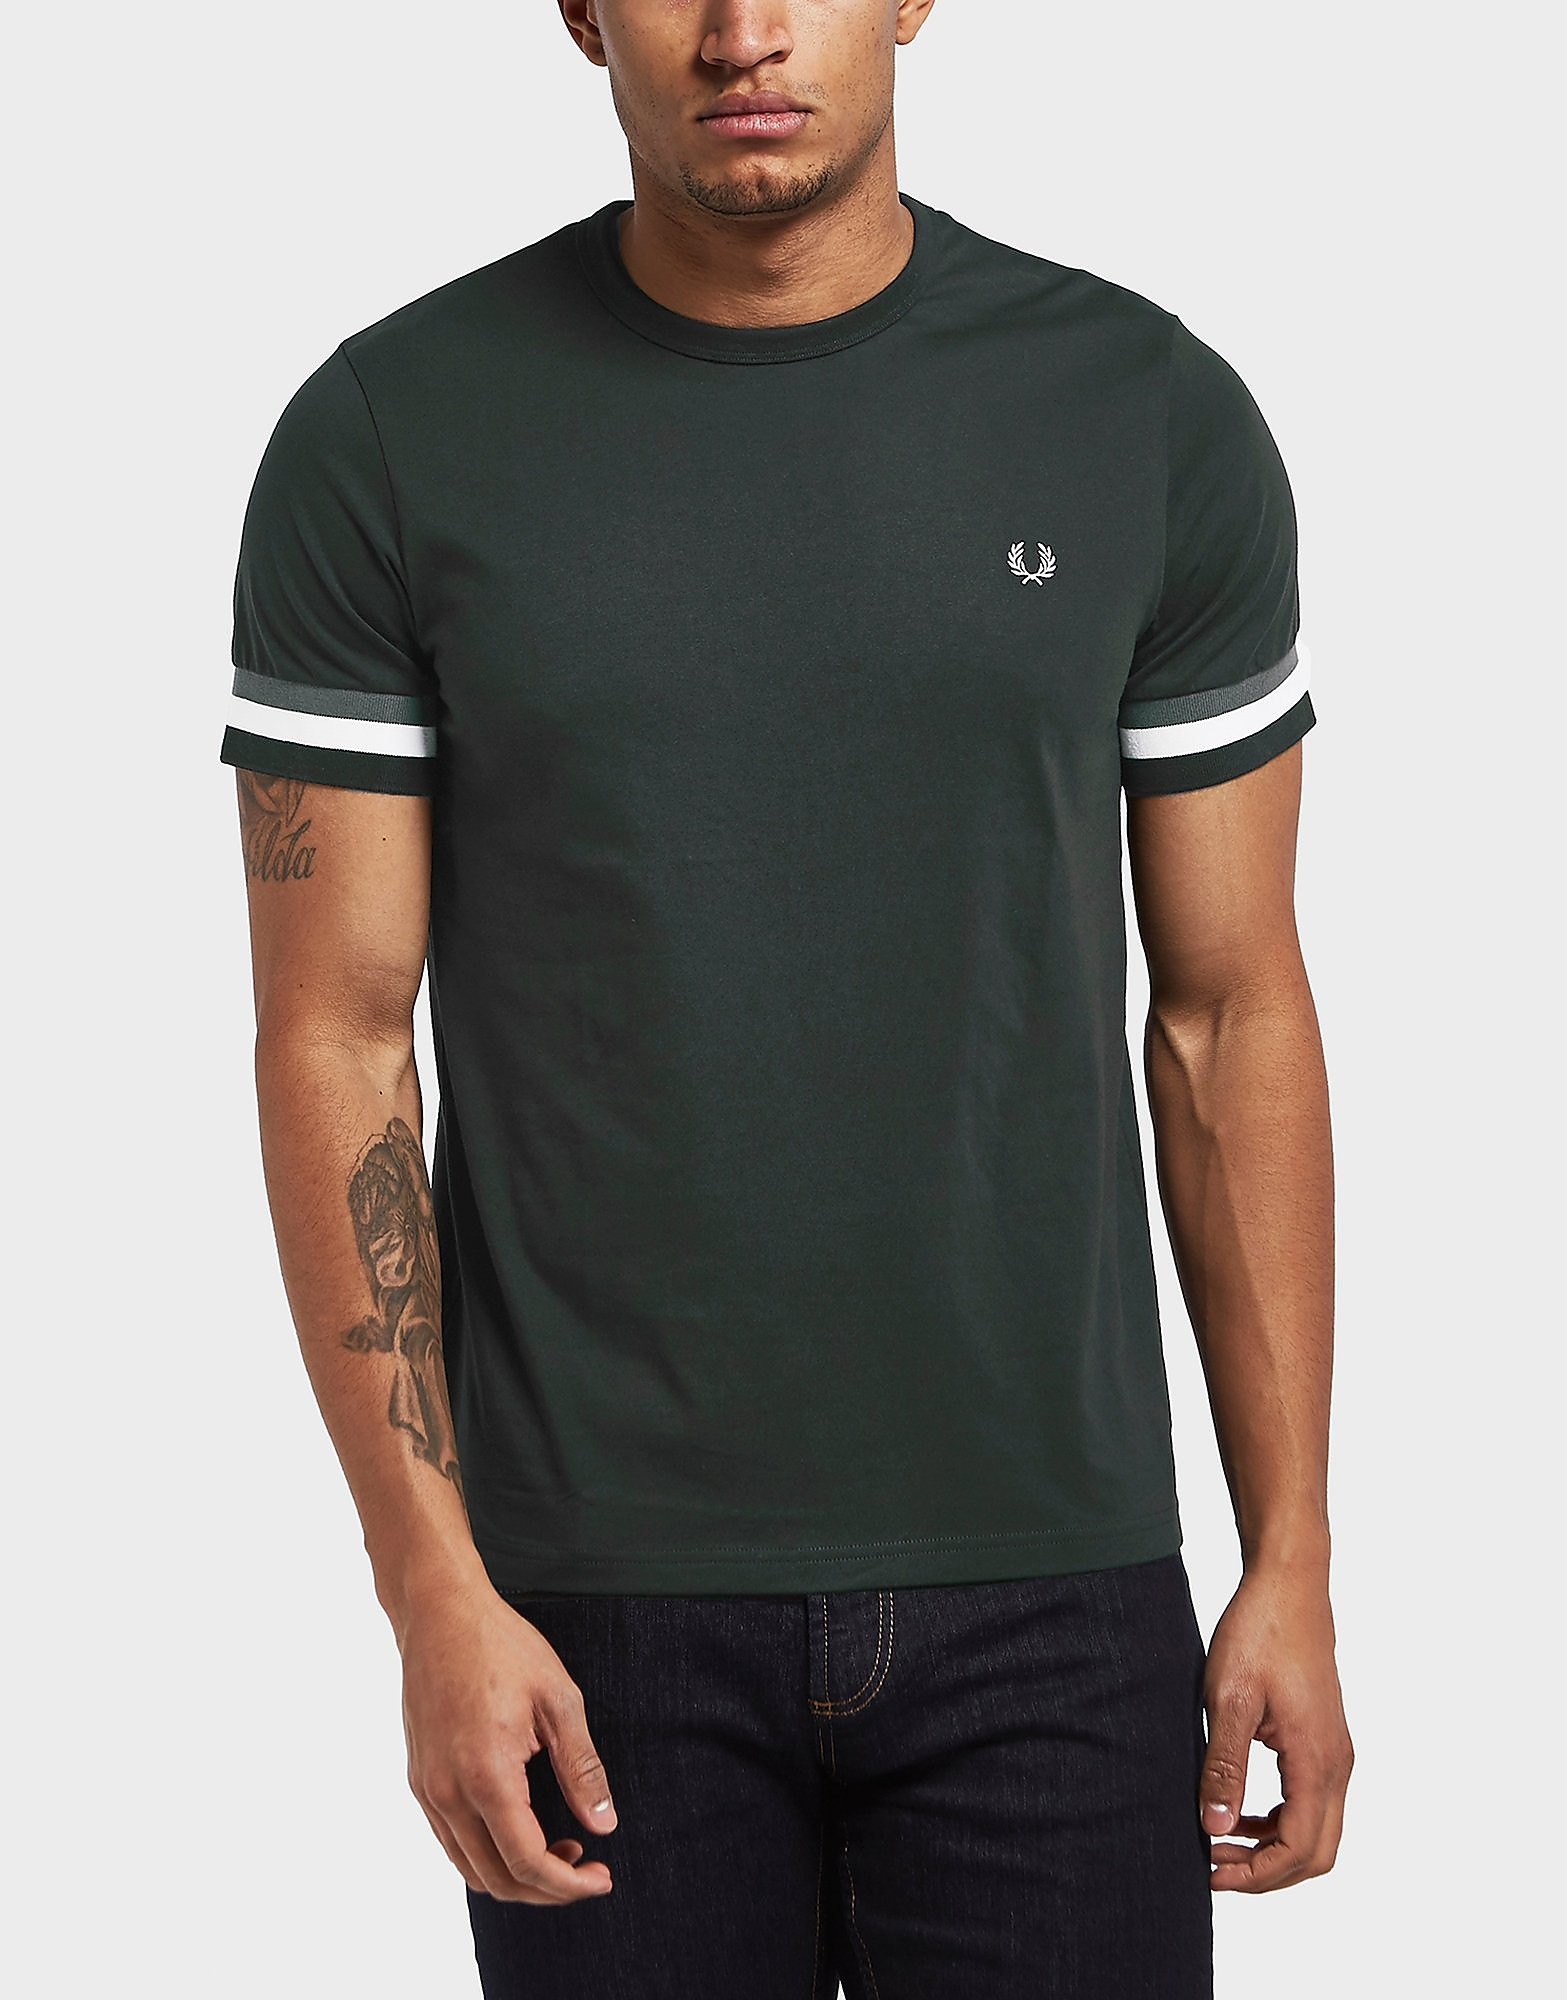 Fred Perry Cuff Short Sleeve T-Shirt - Exclusive